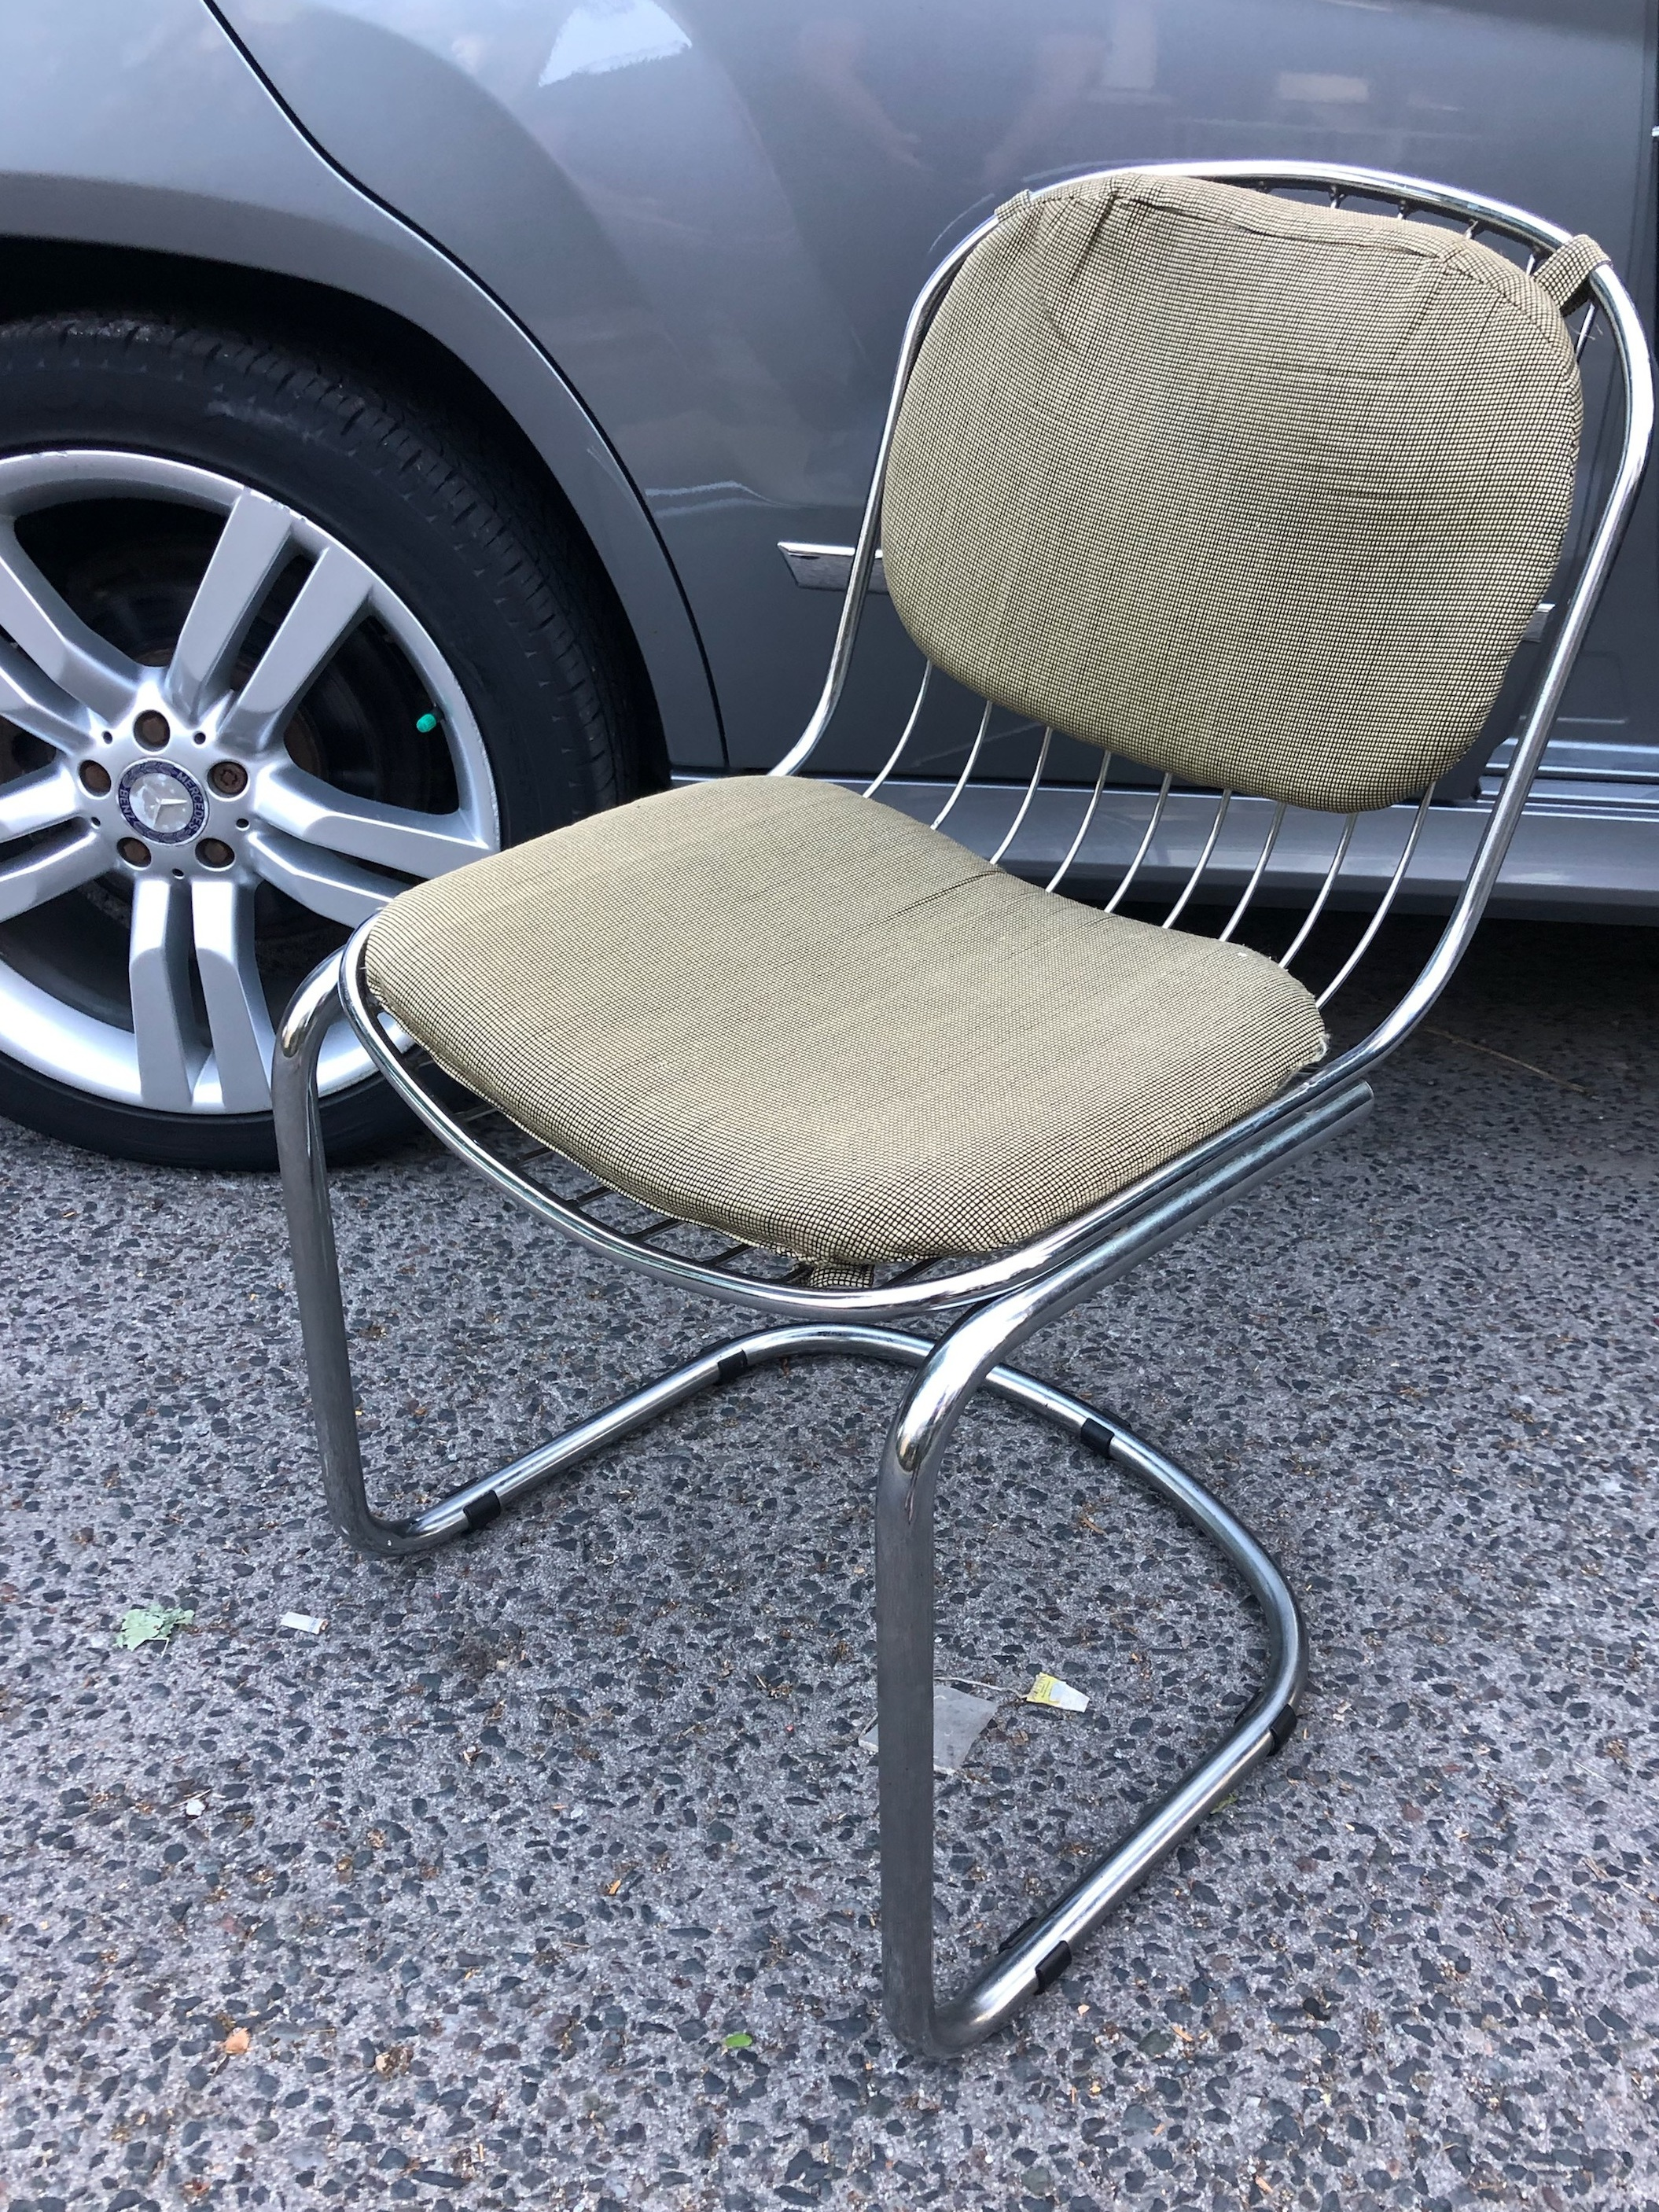 Picking up the vintage cantilevered dining chairs I found on Kijiji. The chrome frames were in great shape.